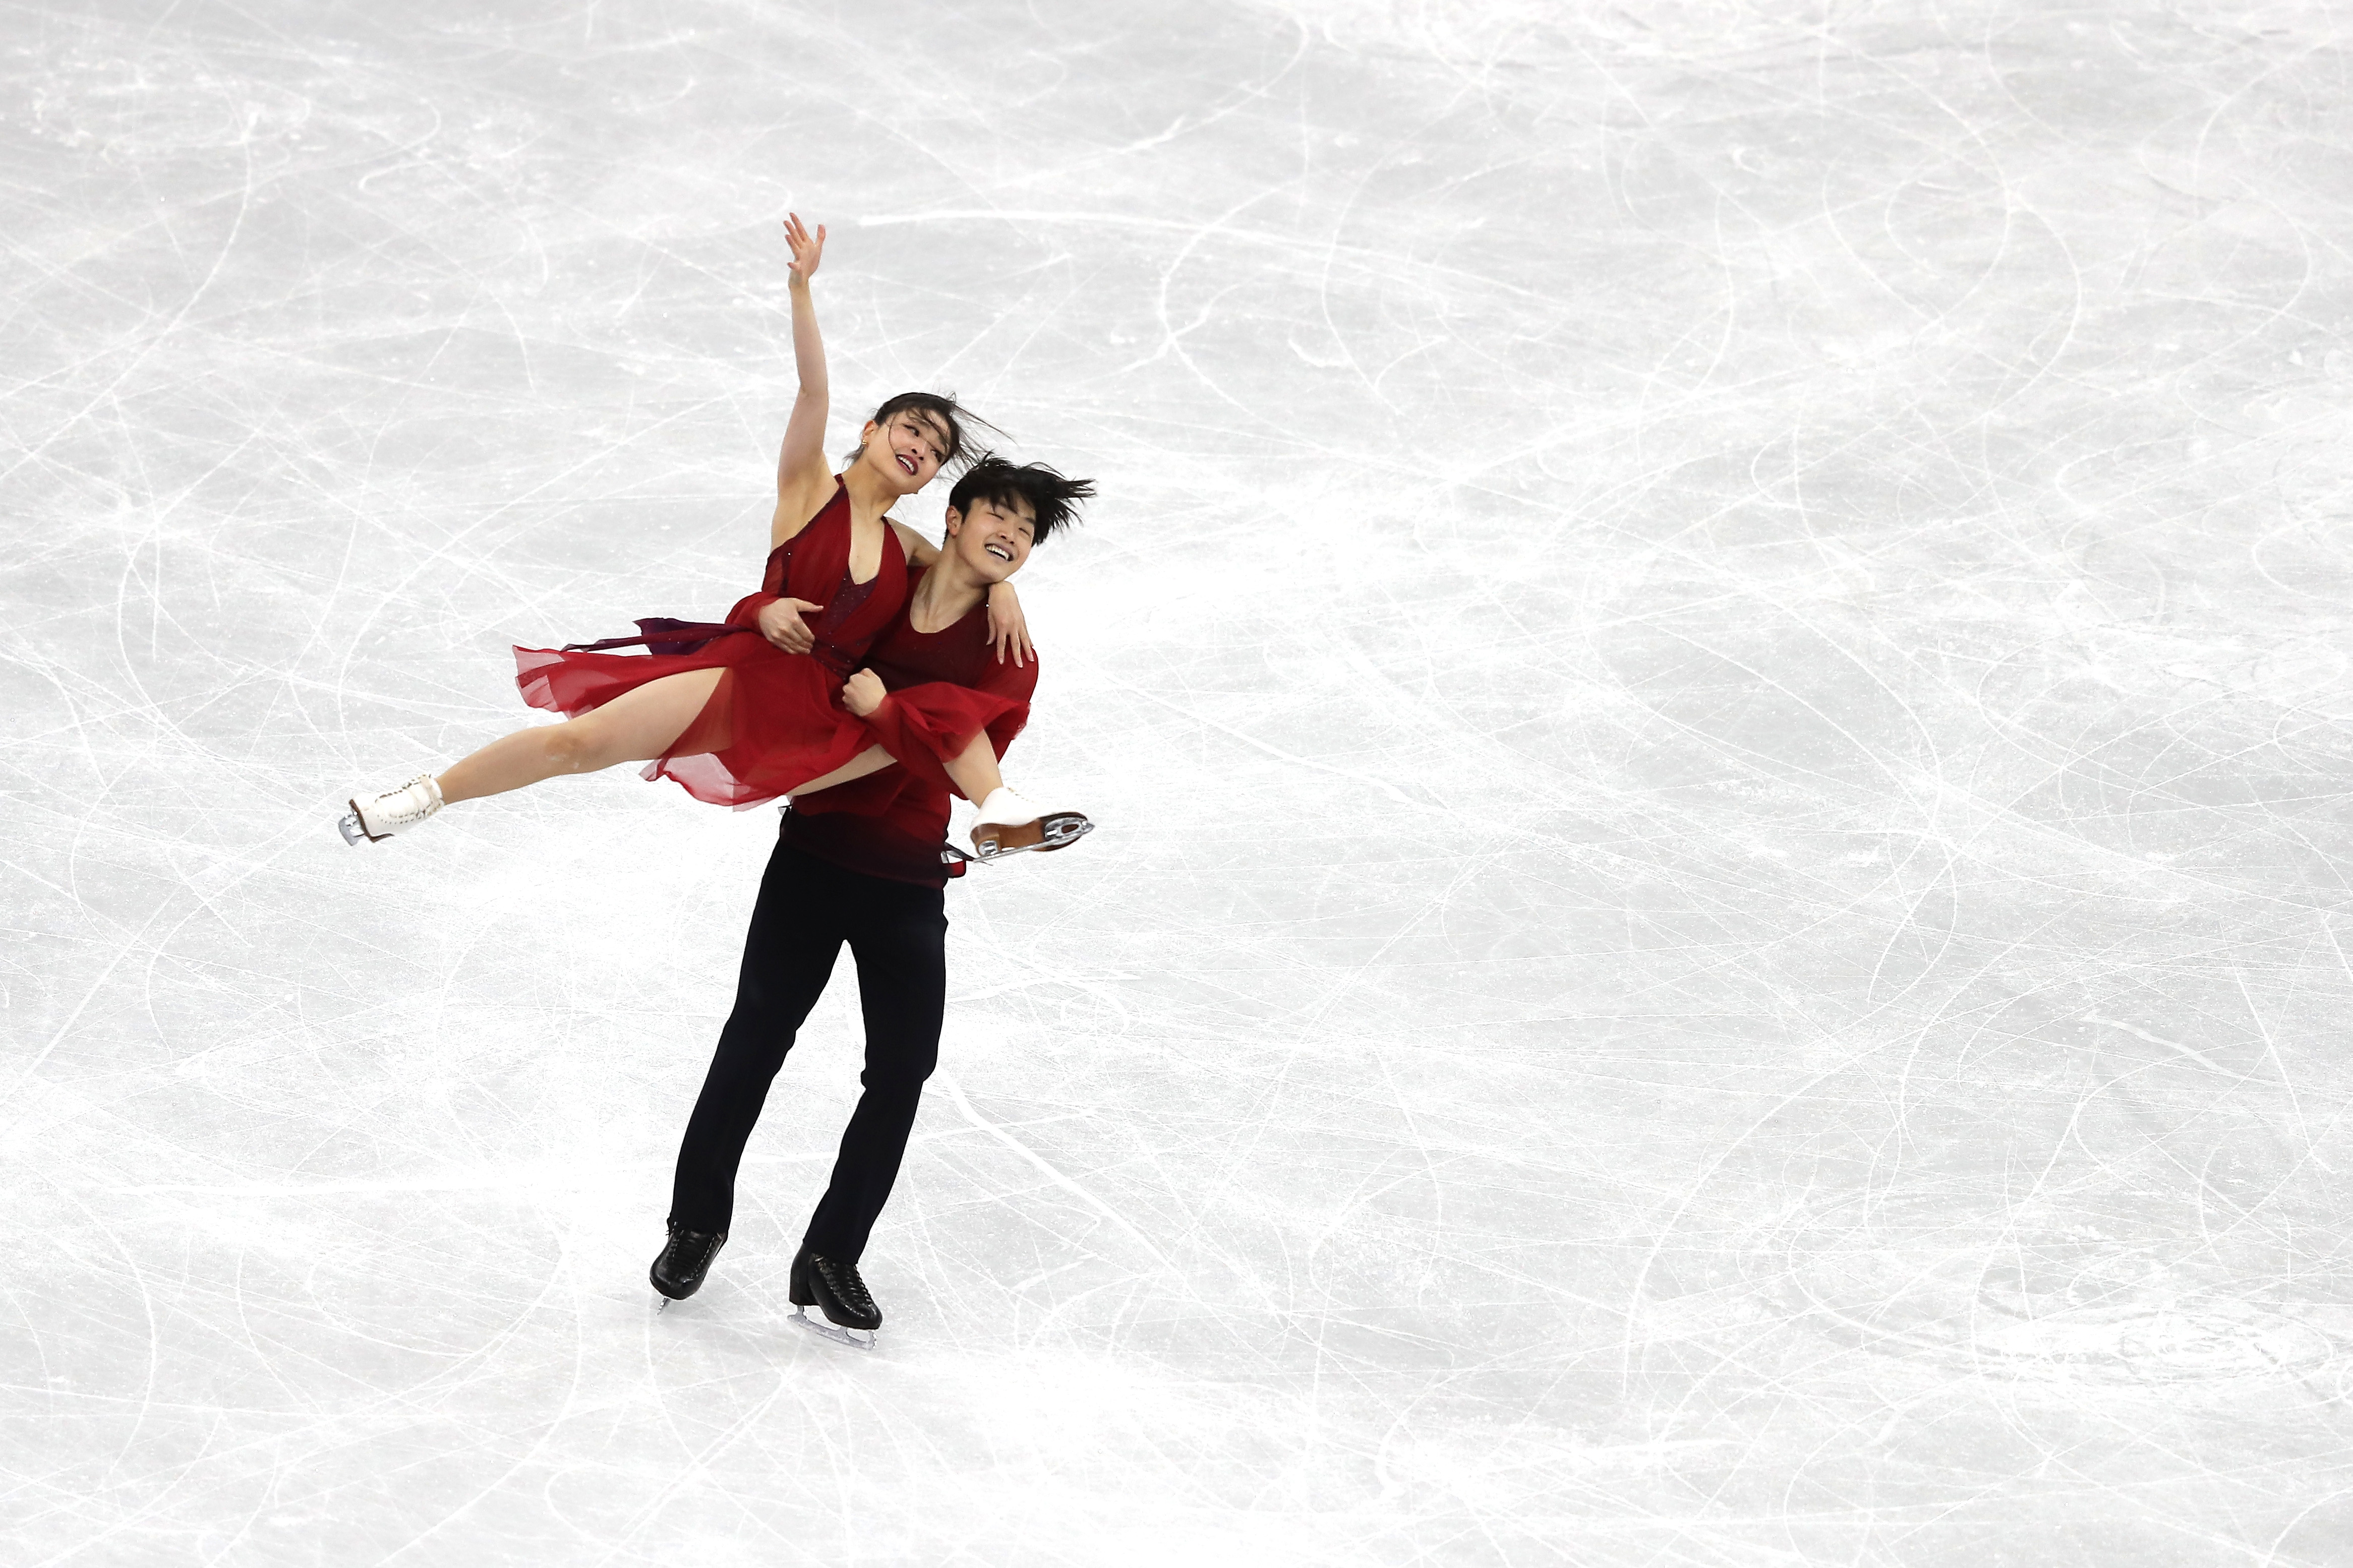 GANGNEUNG, SOUTH KOREA - FEBRUARY 20:  Maia Shibutani and Alex Shibutani of the United States compete in the Figure Skating Ice Dance Free Dance on day eleven of the PyeongChang 2018 Winter Olympic Games at Gangneung Ice Arena on February 20, 2018...